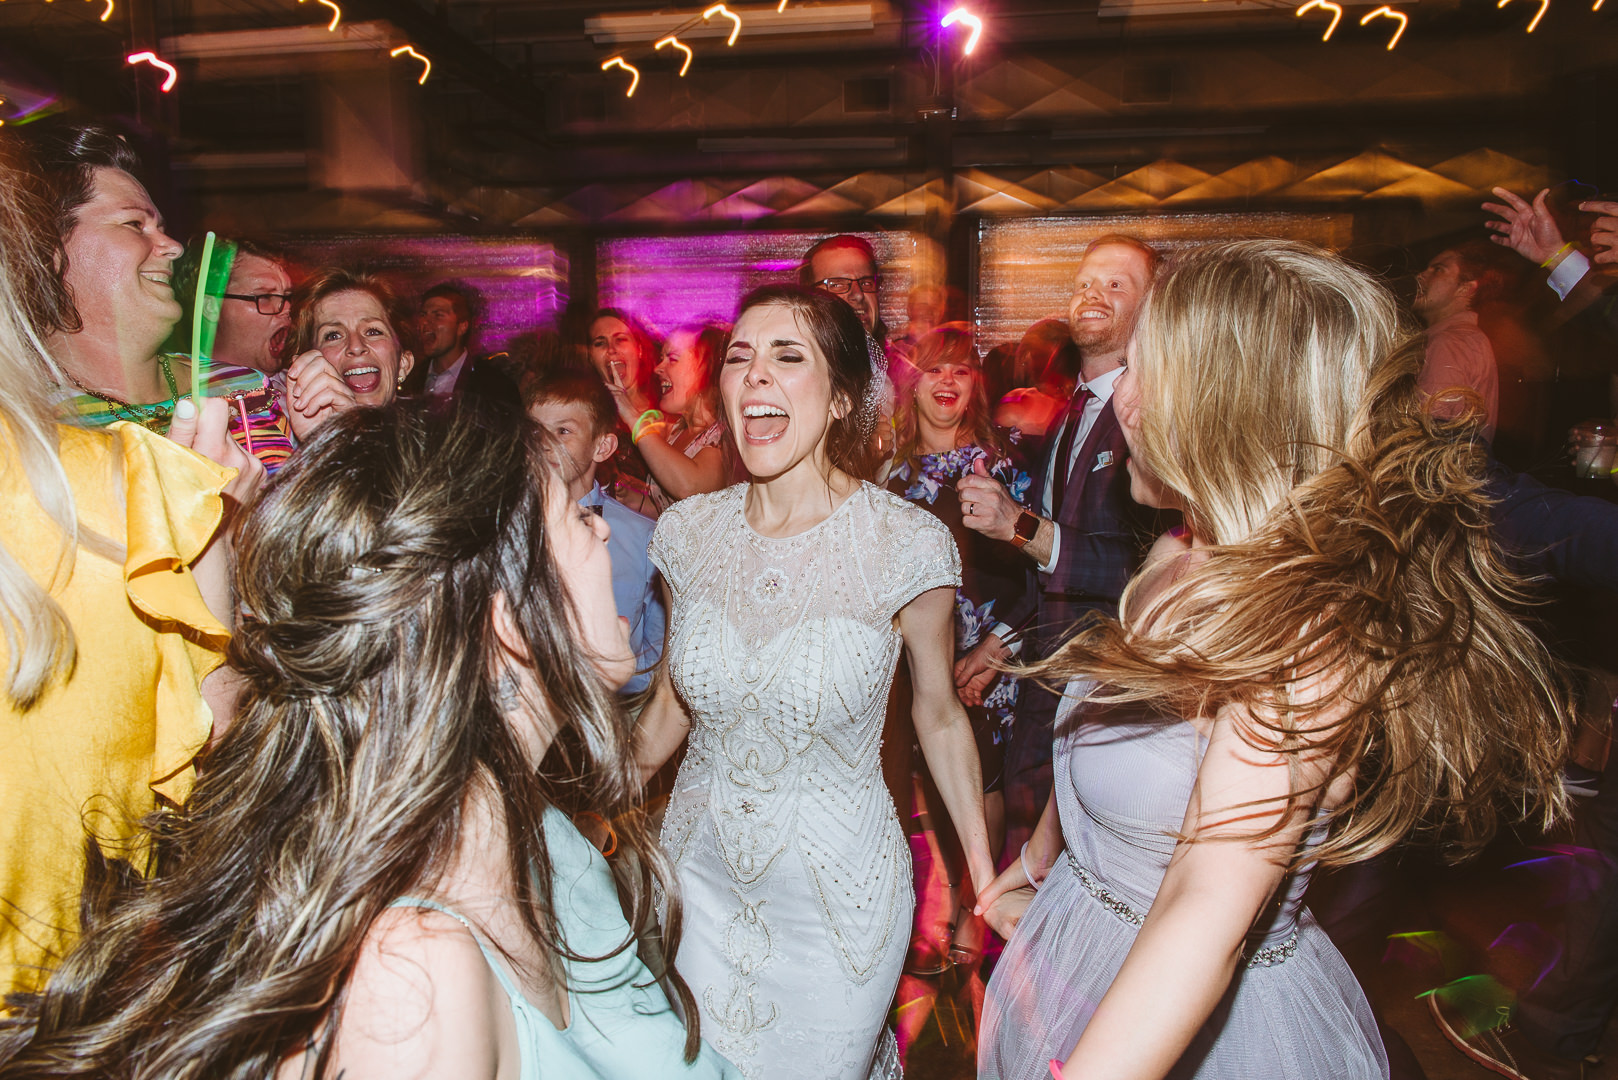 Fun Bride - From my best wedding photos from 2019